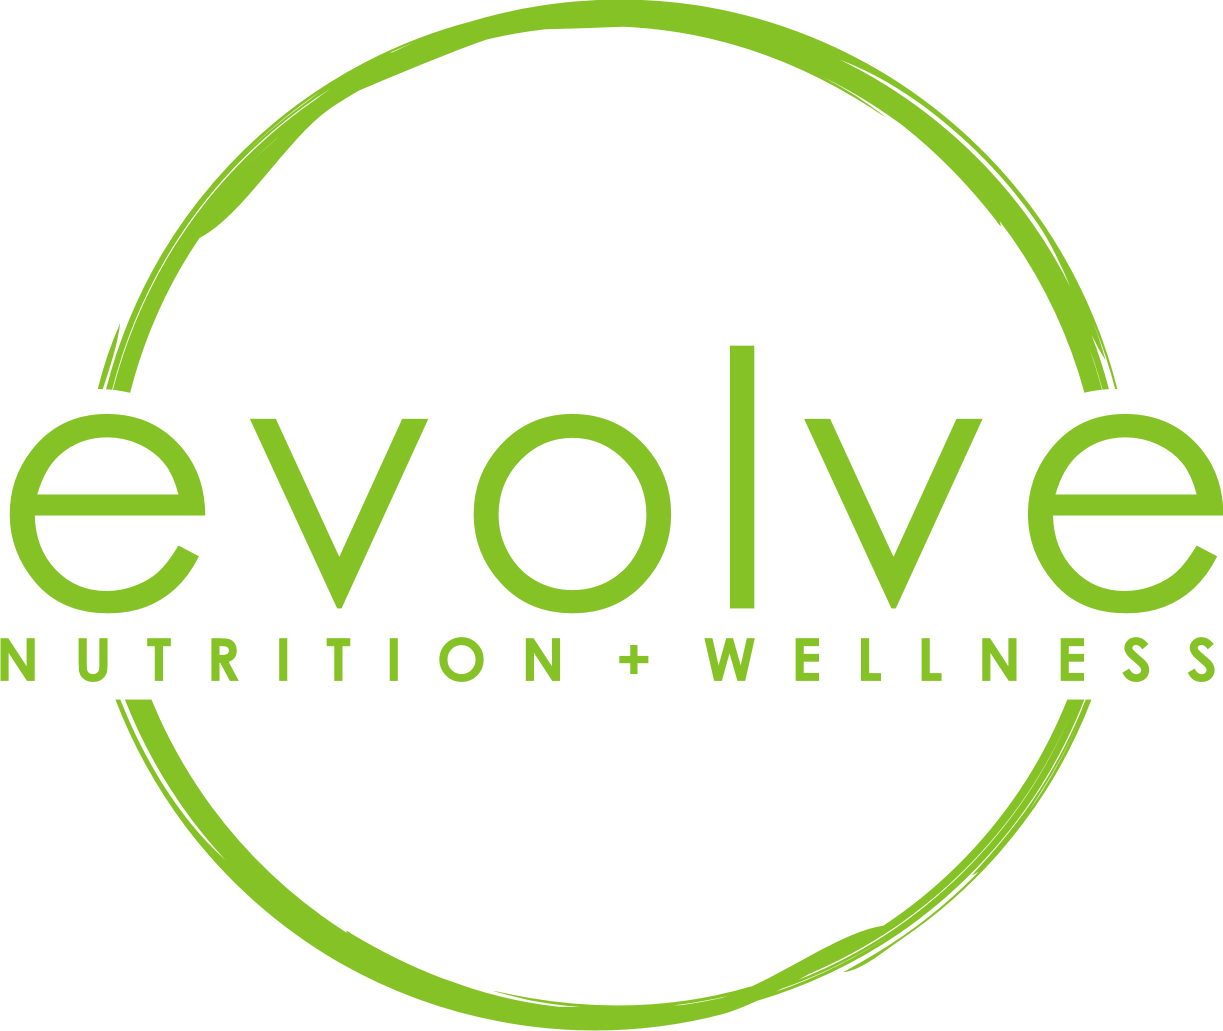 Evolve Nutrition and Wellness